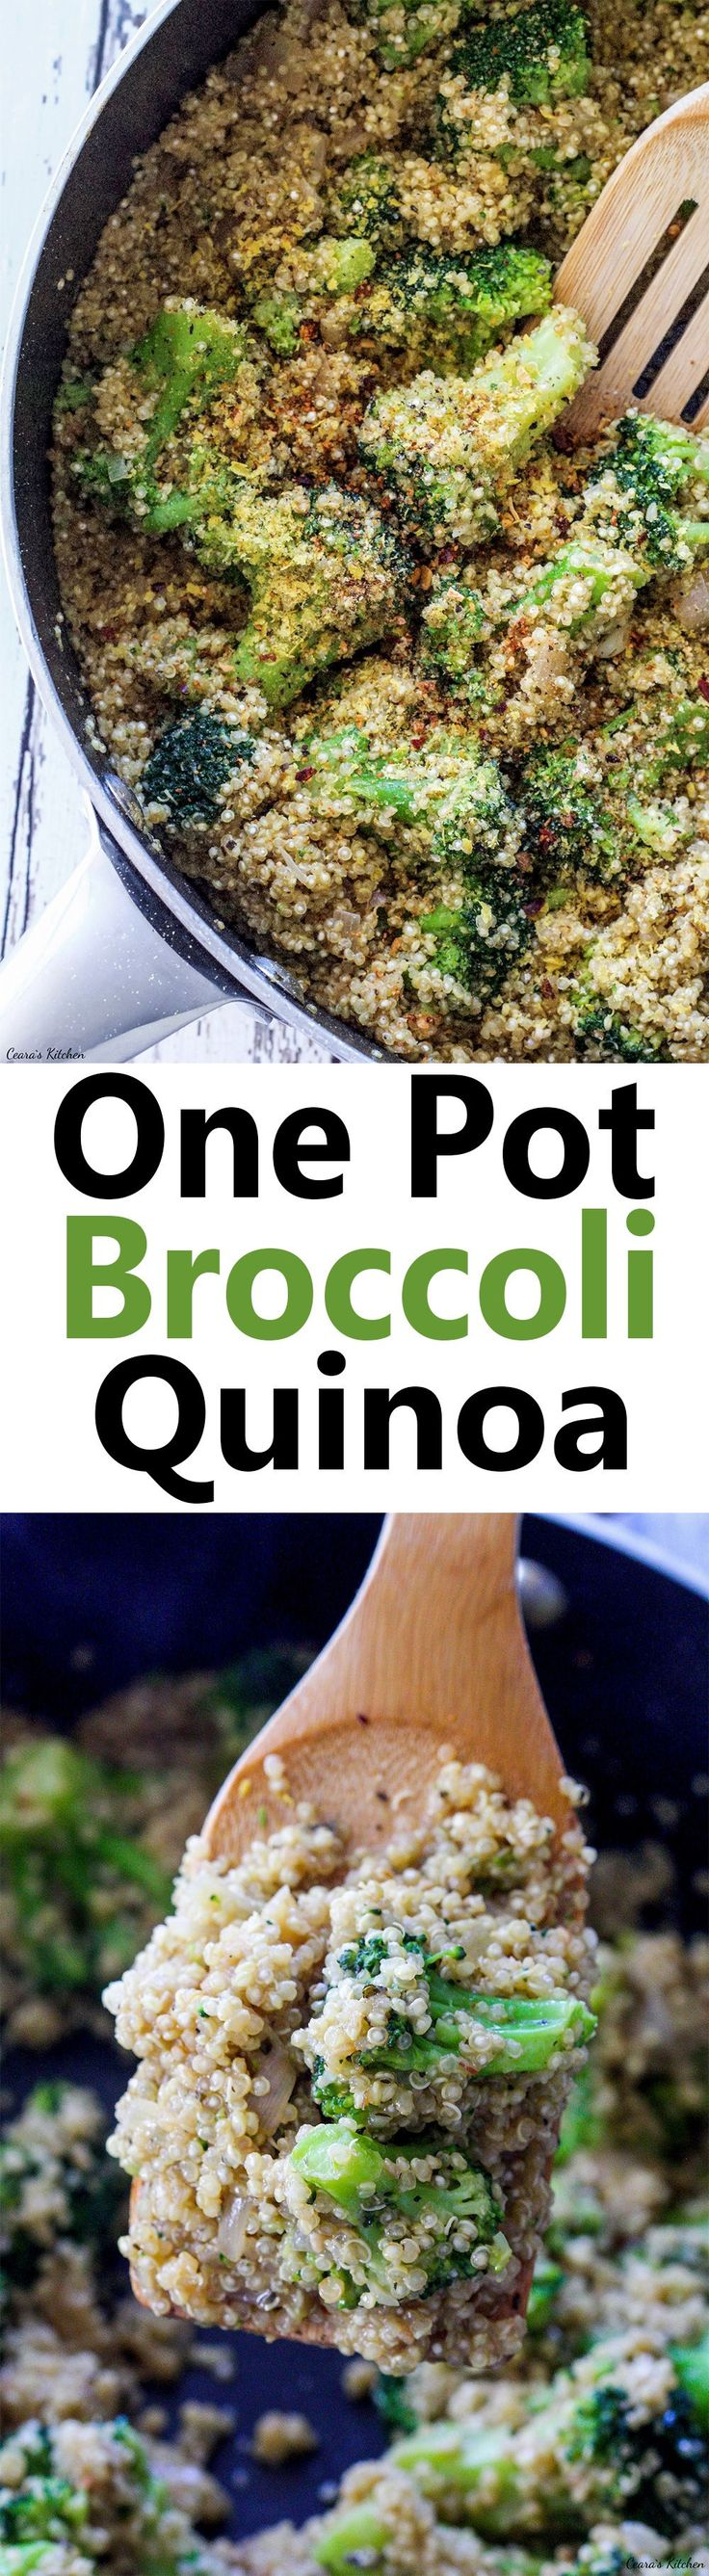 A casserole of broccoli and quinoa easy to cook ready in just 25 minutes! #MeatlessMonday …